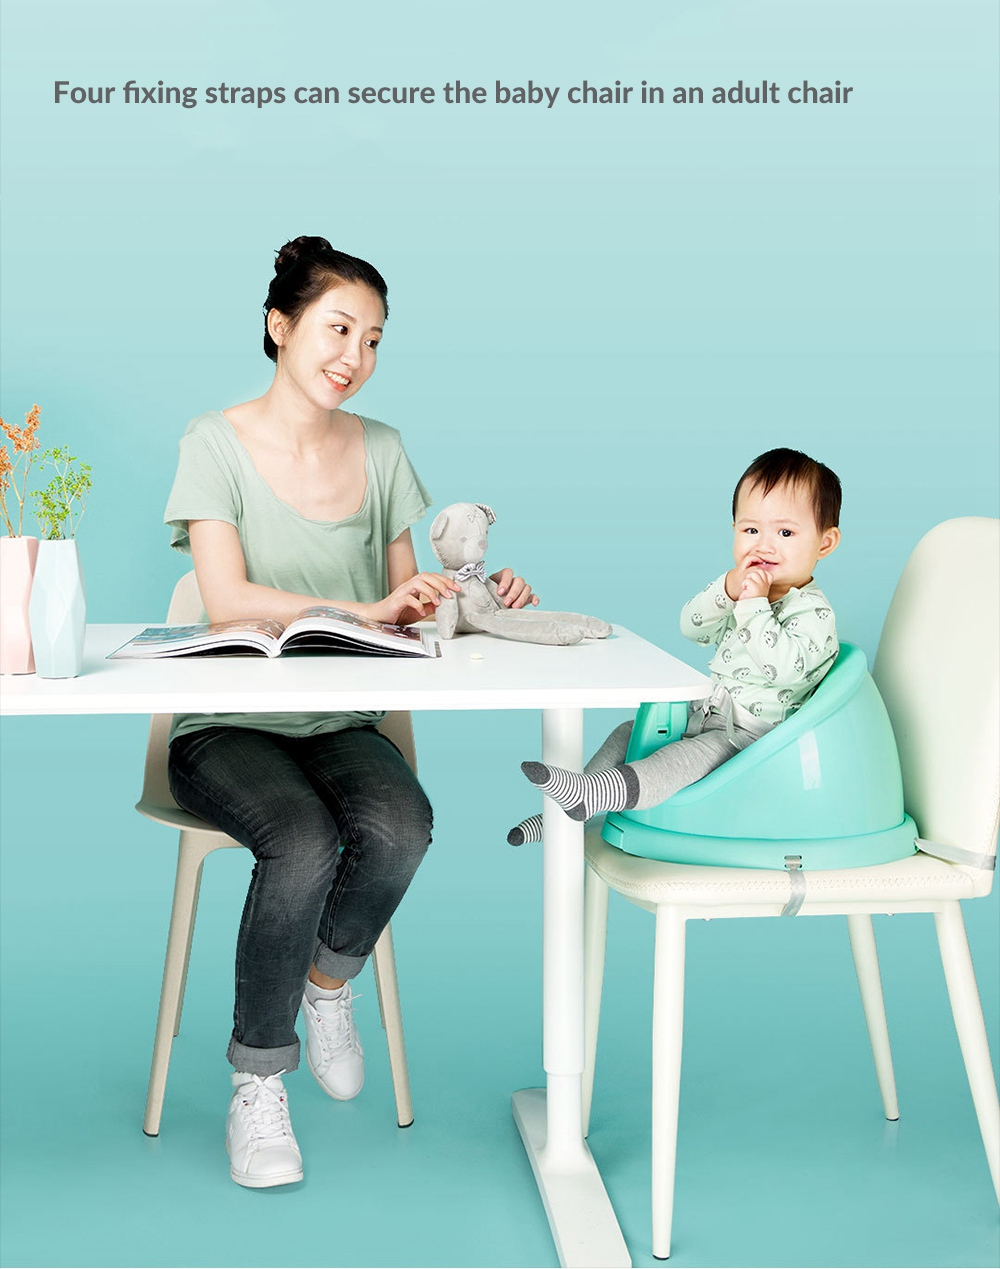 Xiaomi Mijia Multifunctional Baby Chair cinturones